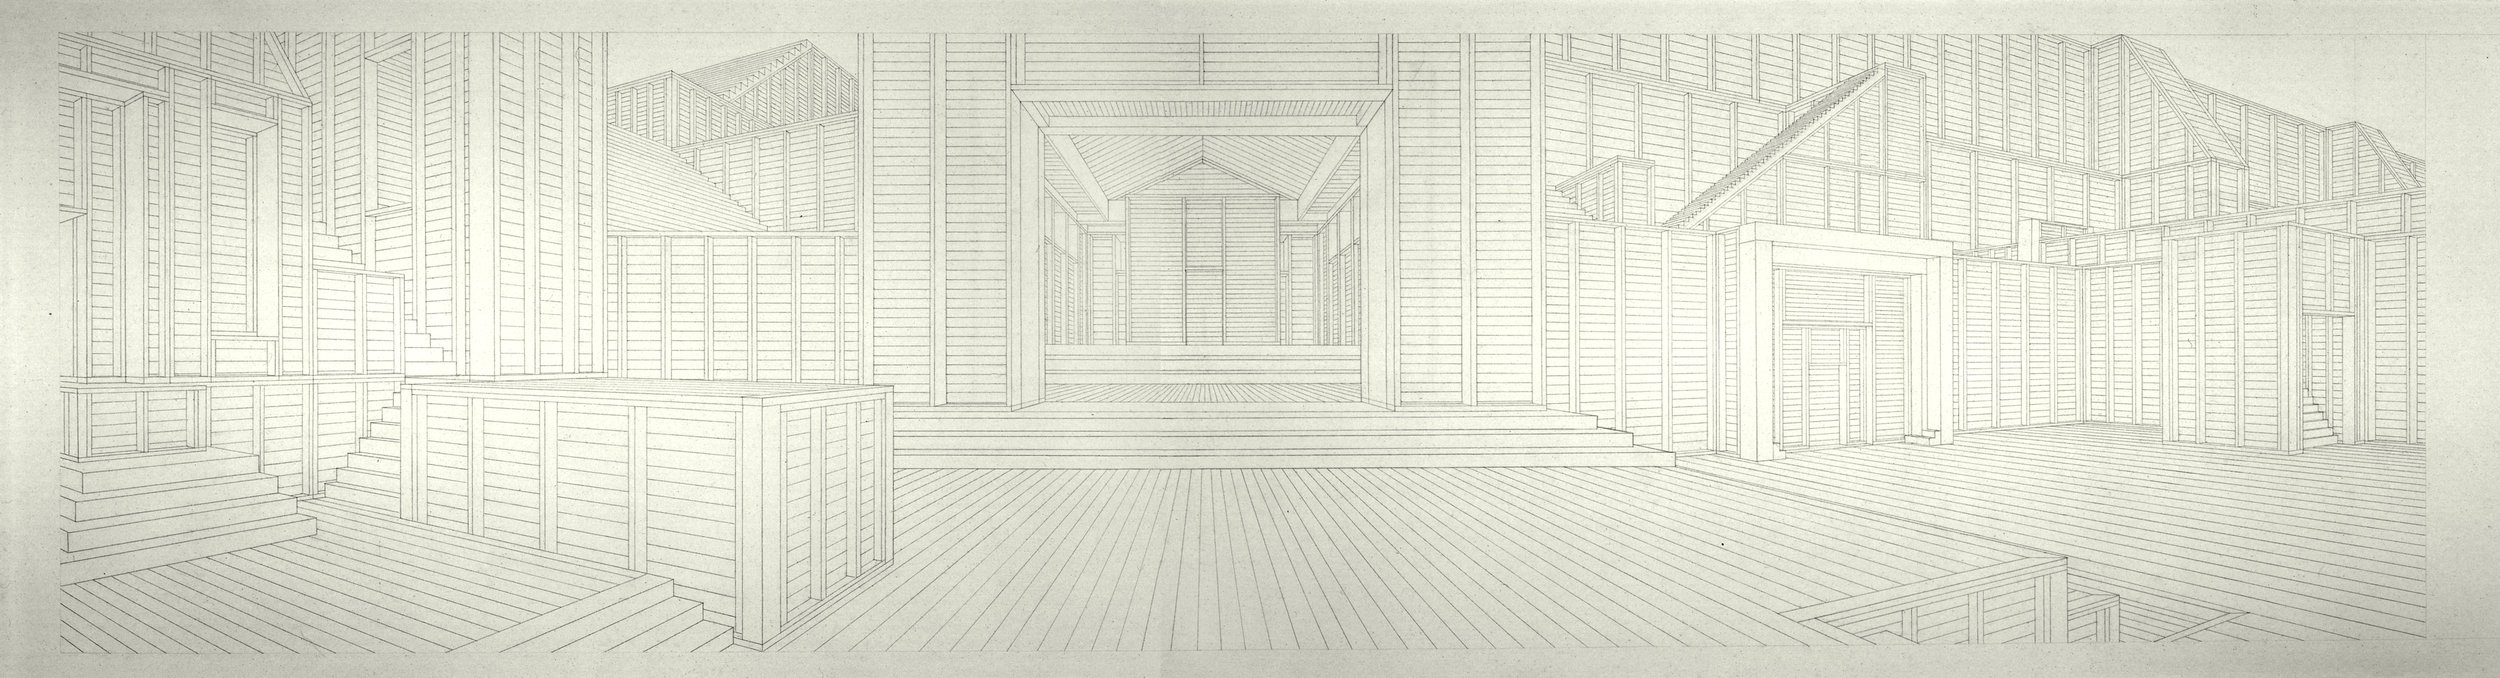 Images 1  Altar, Temple, Mosque 2005. Charcoal on canvas - 3 x 12 feet.